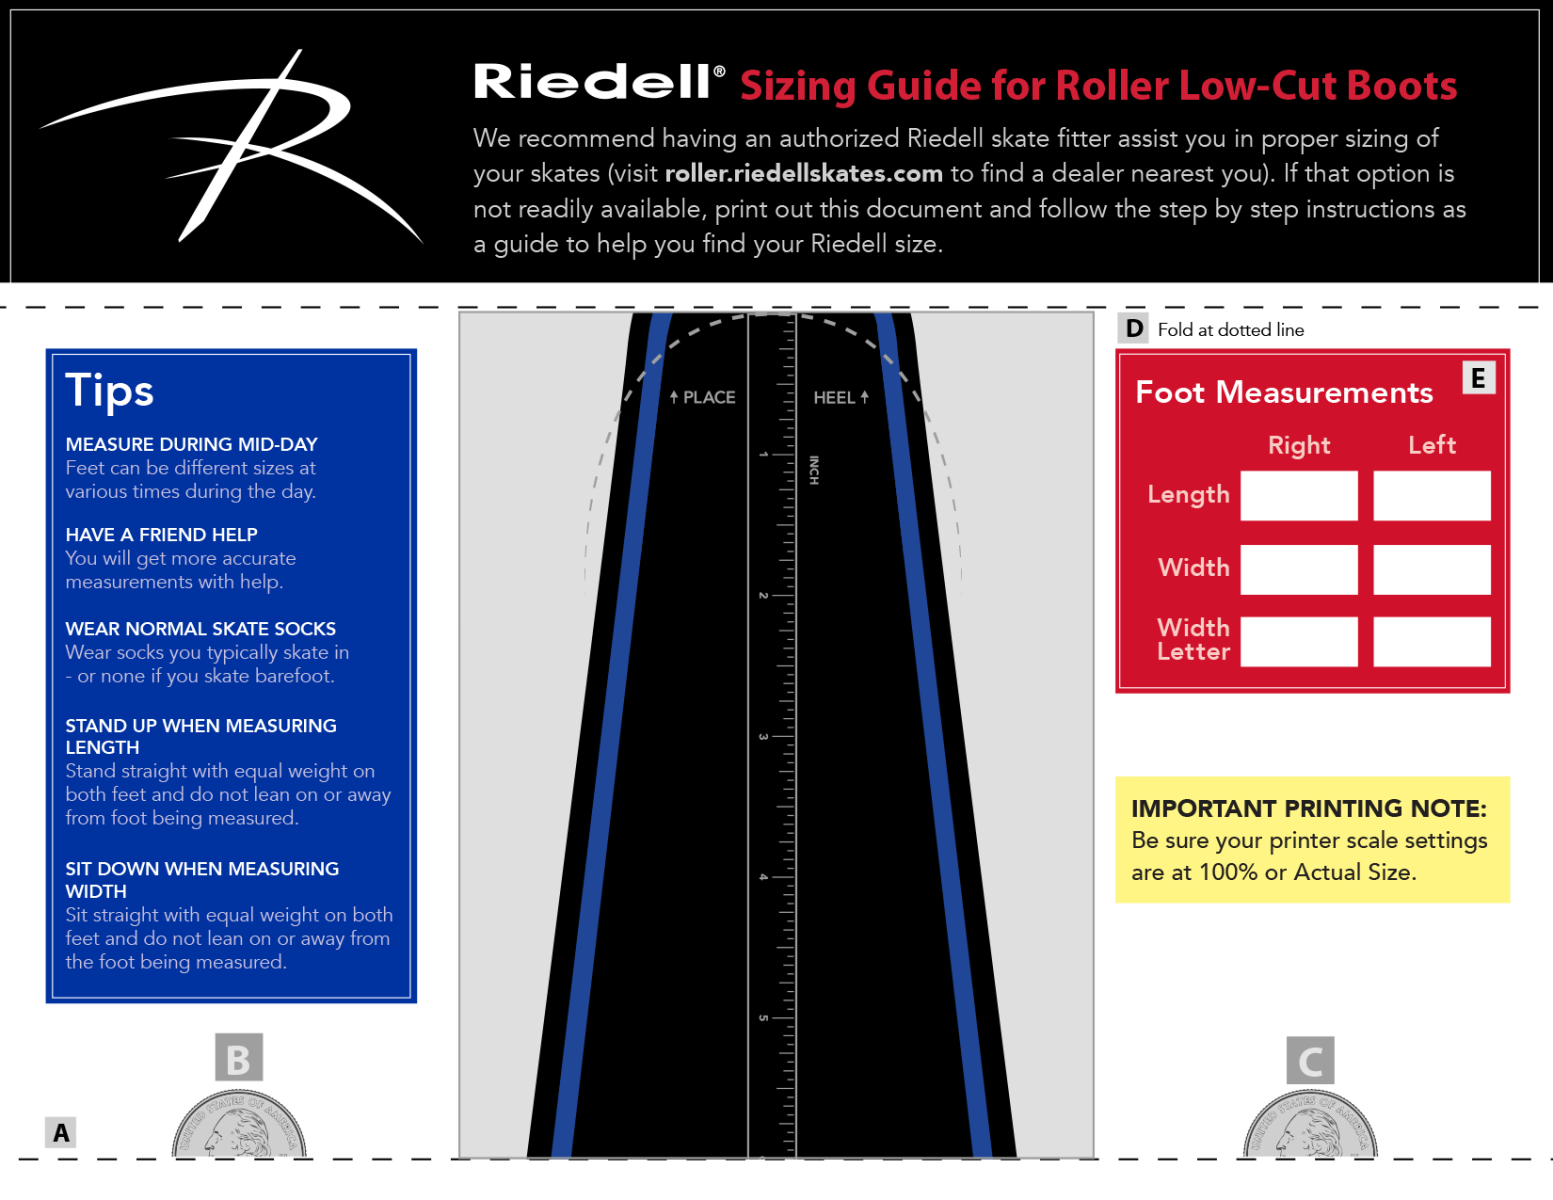 Click to download Riedell's Low-Cut Boot Sizing Guide.